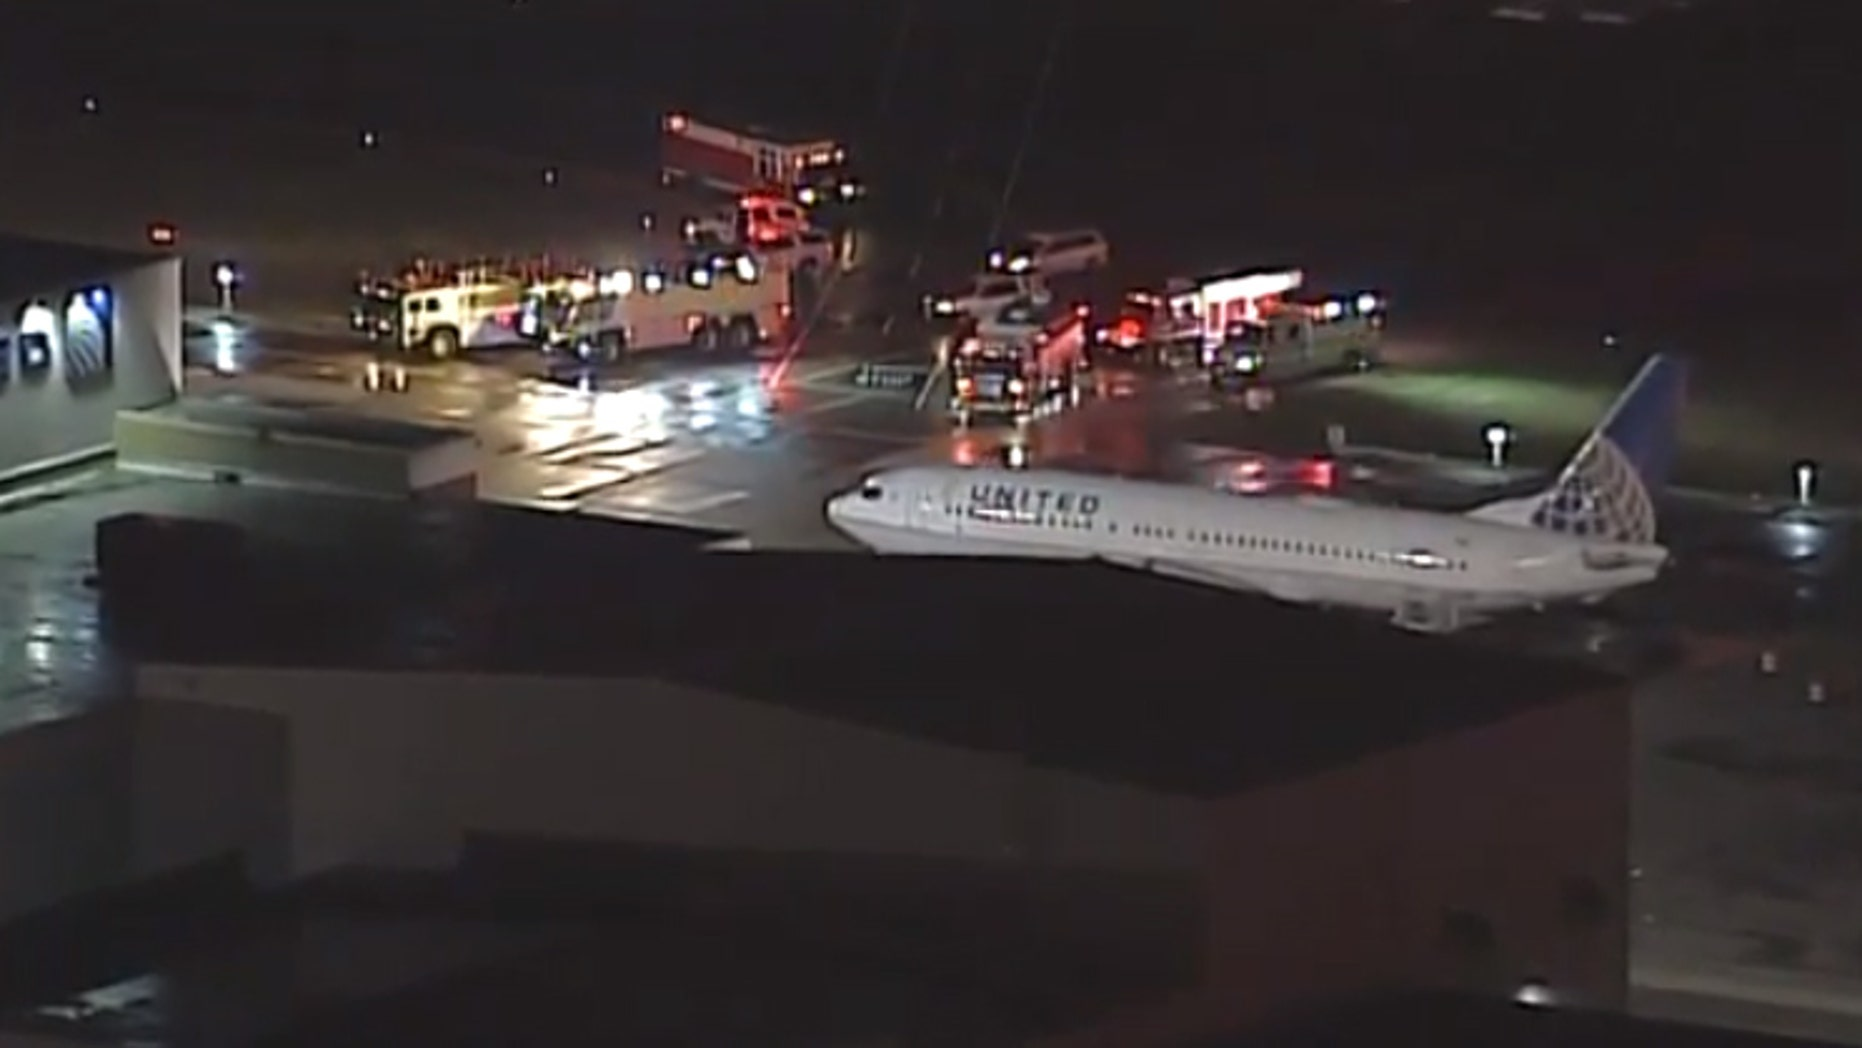 The Cleveland Fire Department responded to calls of a fuel spill shortly after 5:30 a.m.